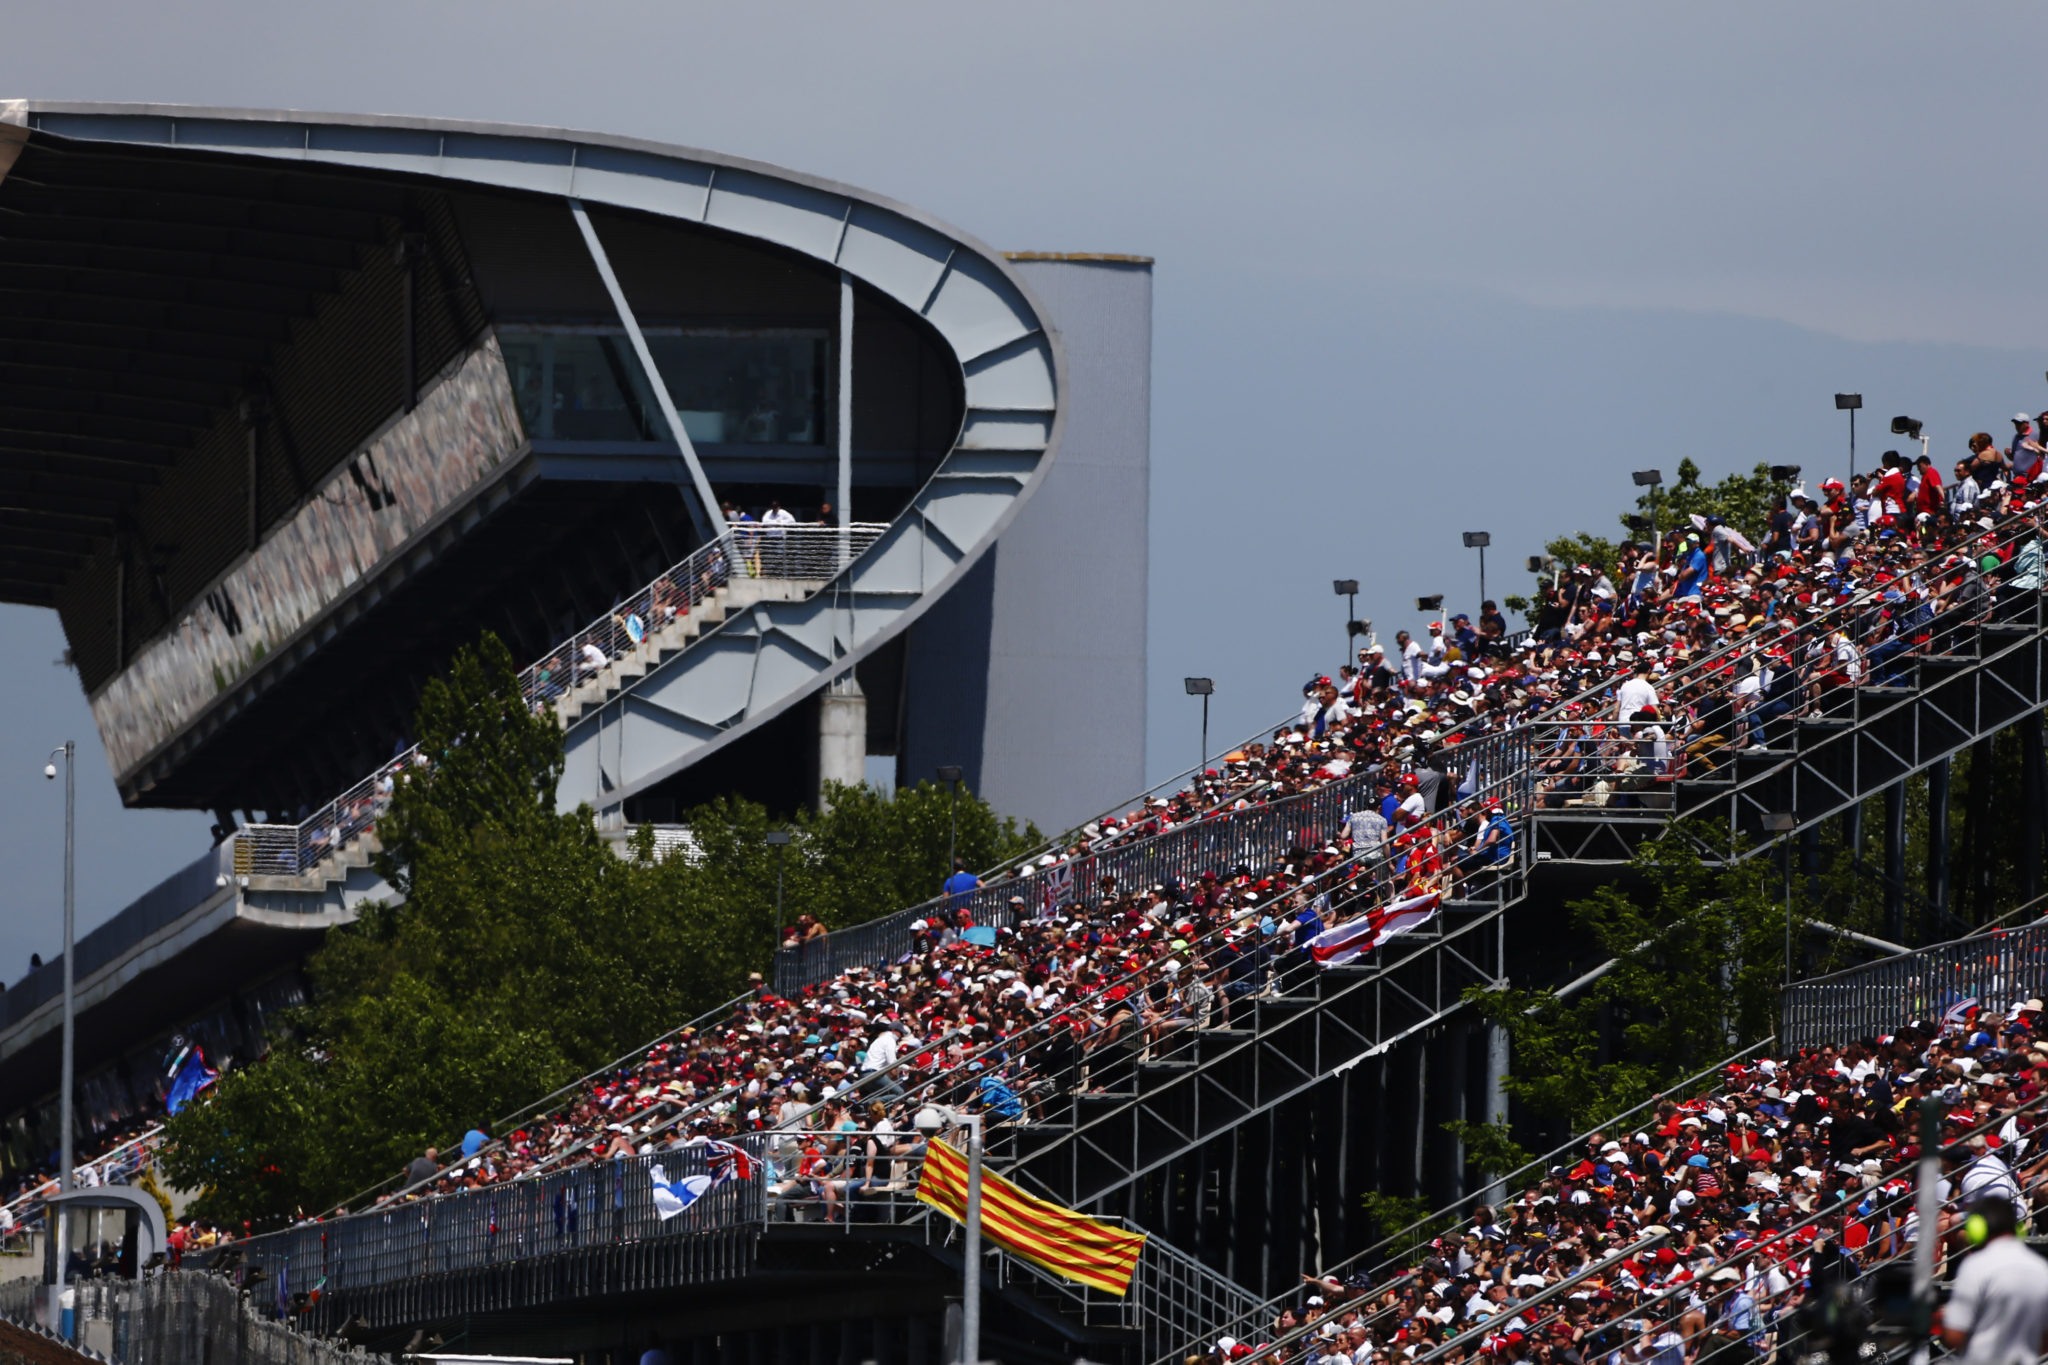 F1 Grandstand at the Spanish Grand Prix